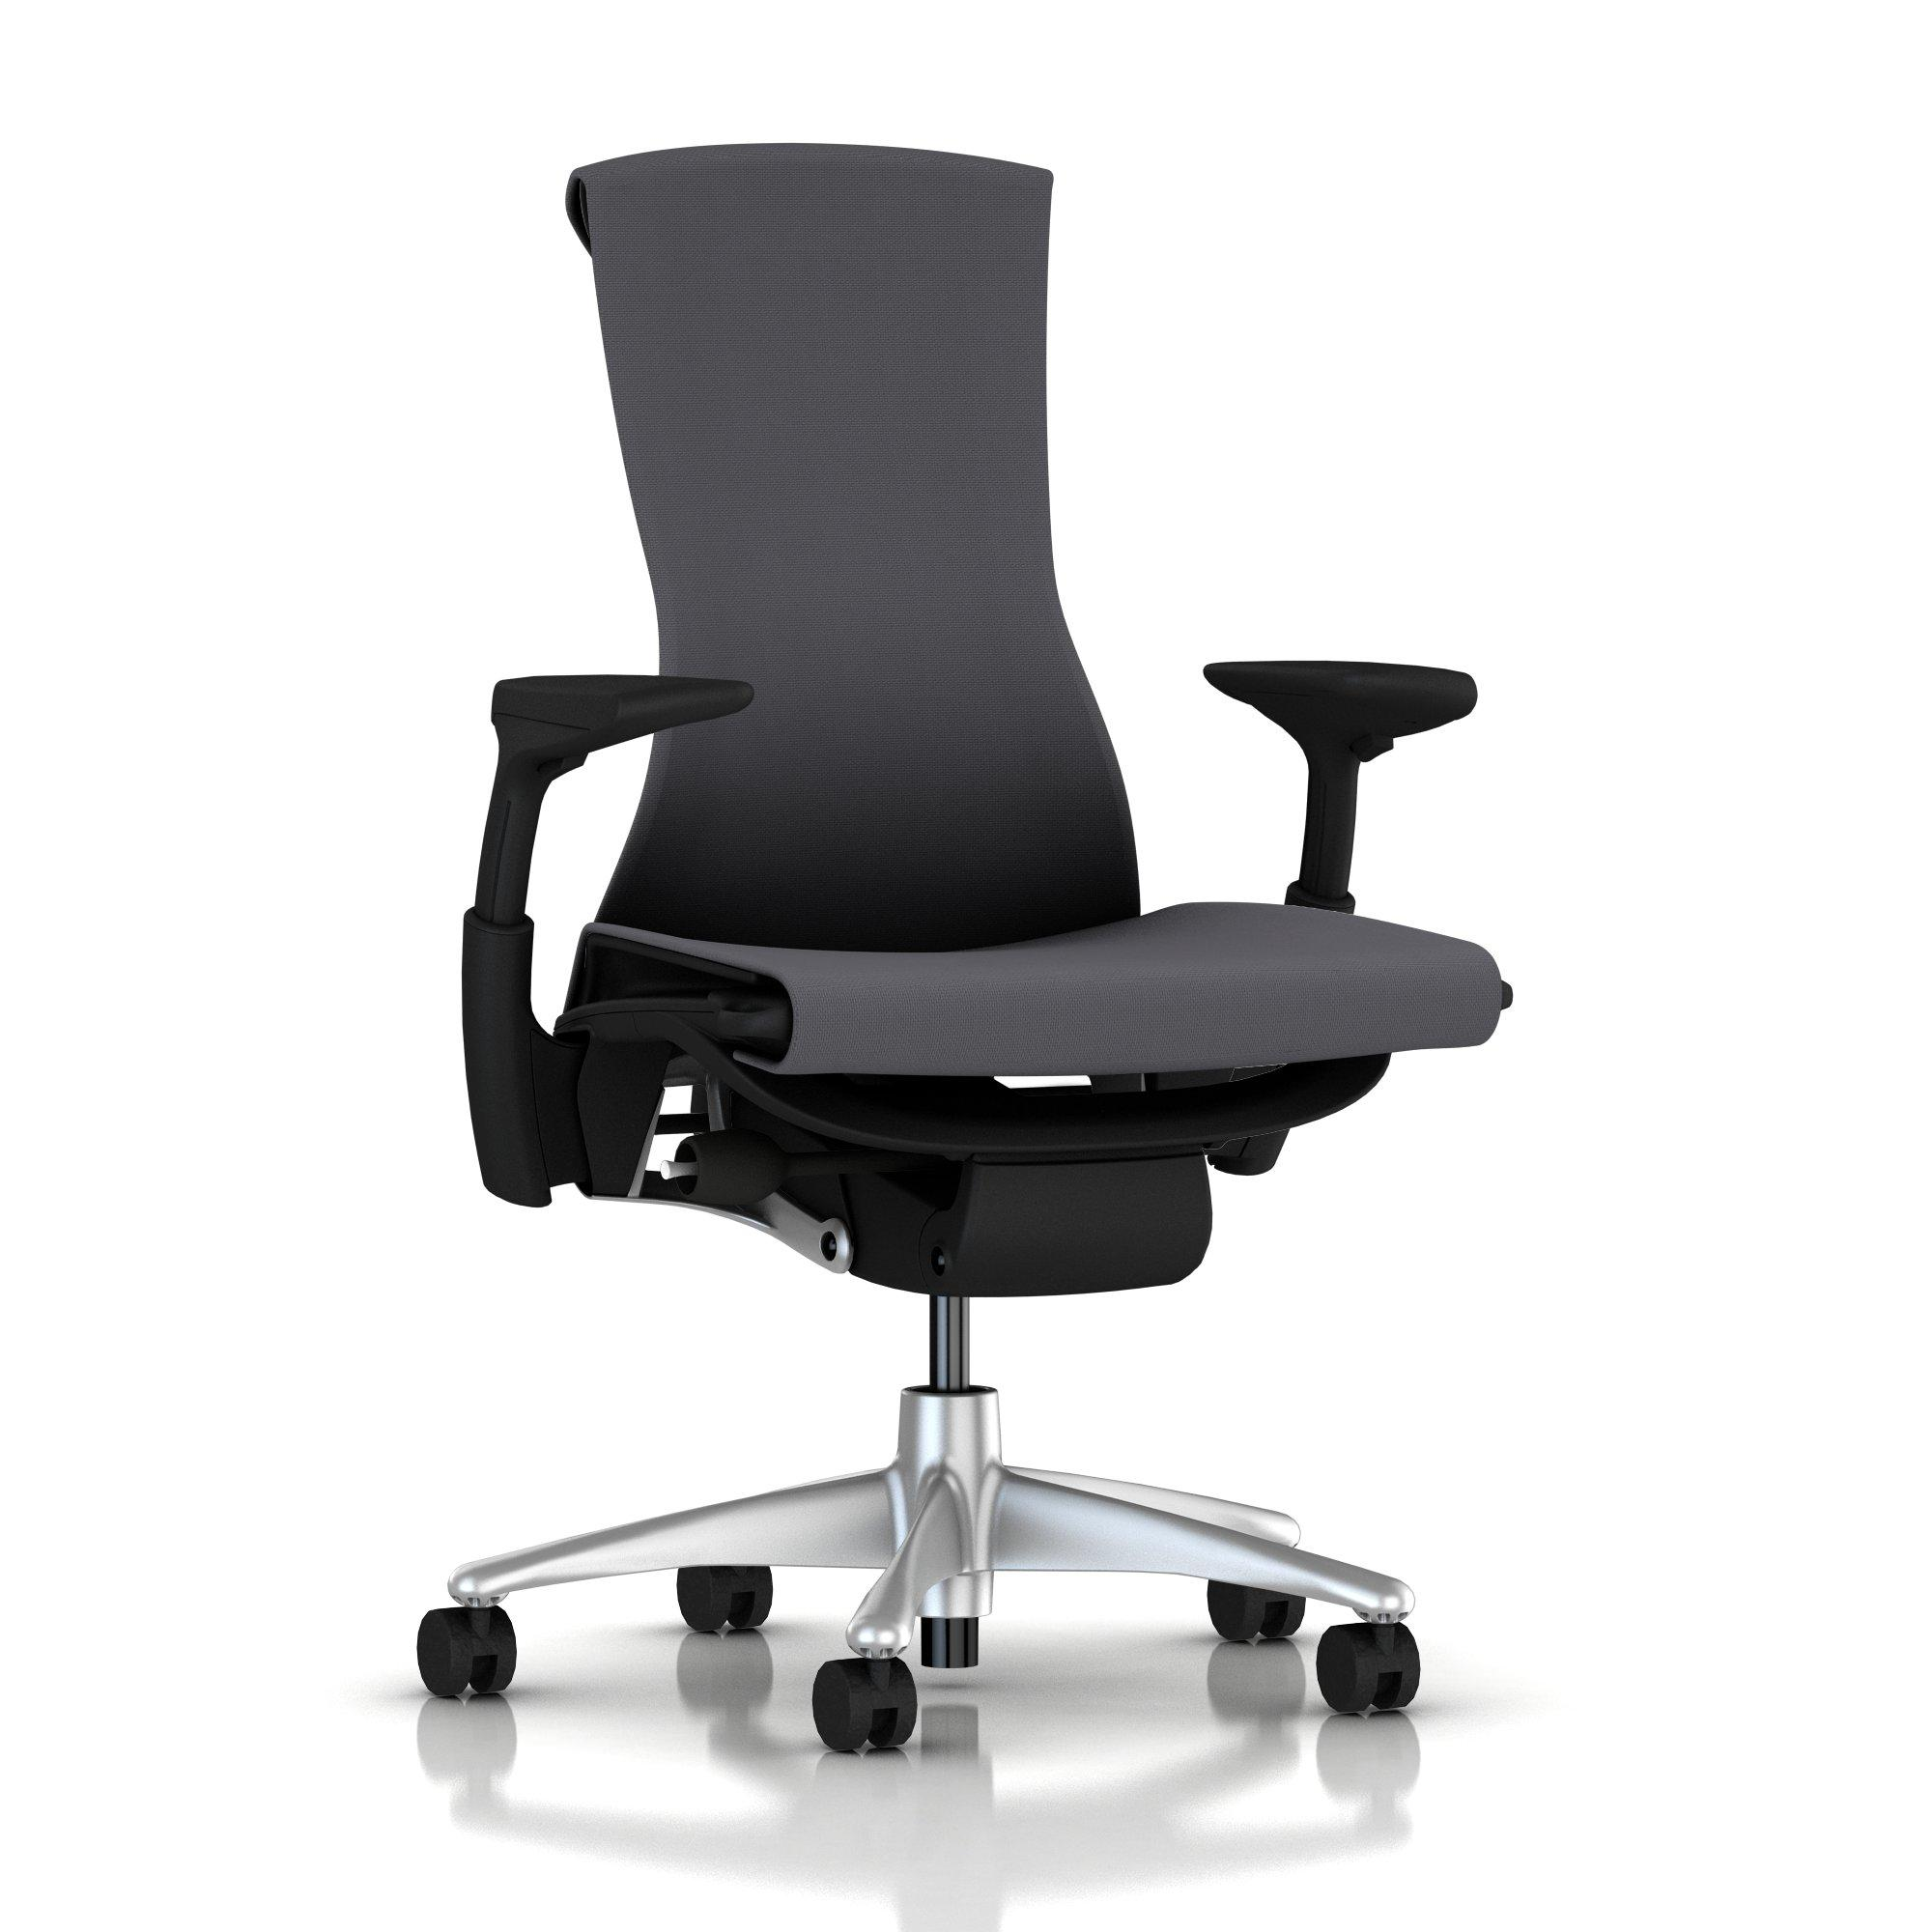 Titanium Base - Adjustable Arms - Graphite Frame - 2.5-inch Standard Carpet Casters - Charcoal Rhythm Fabric Seat and Back